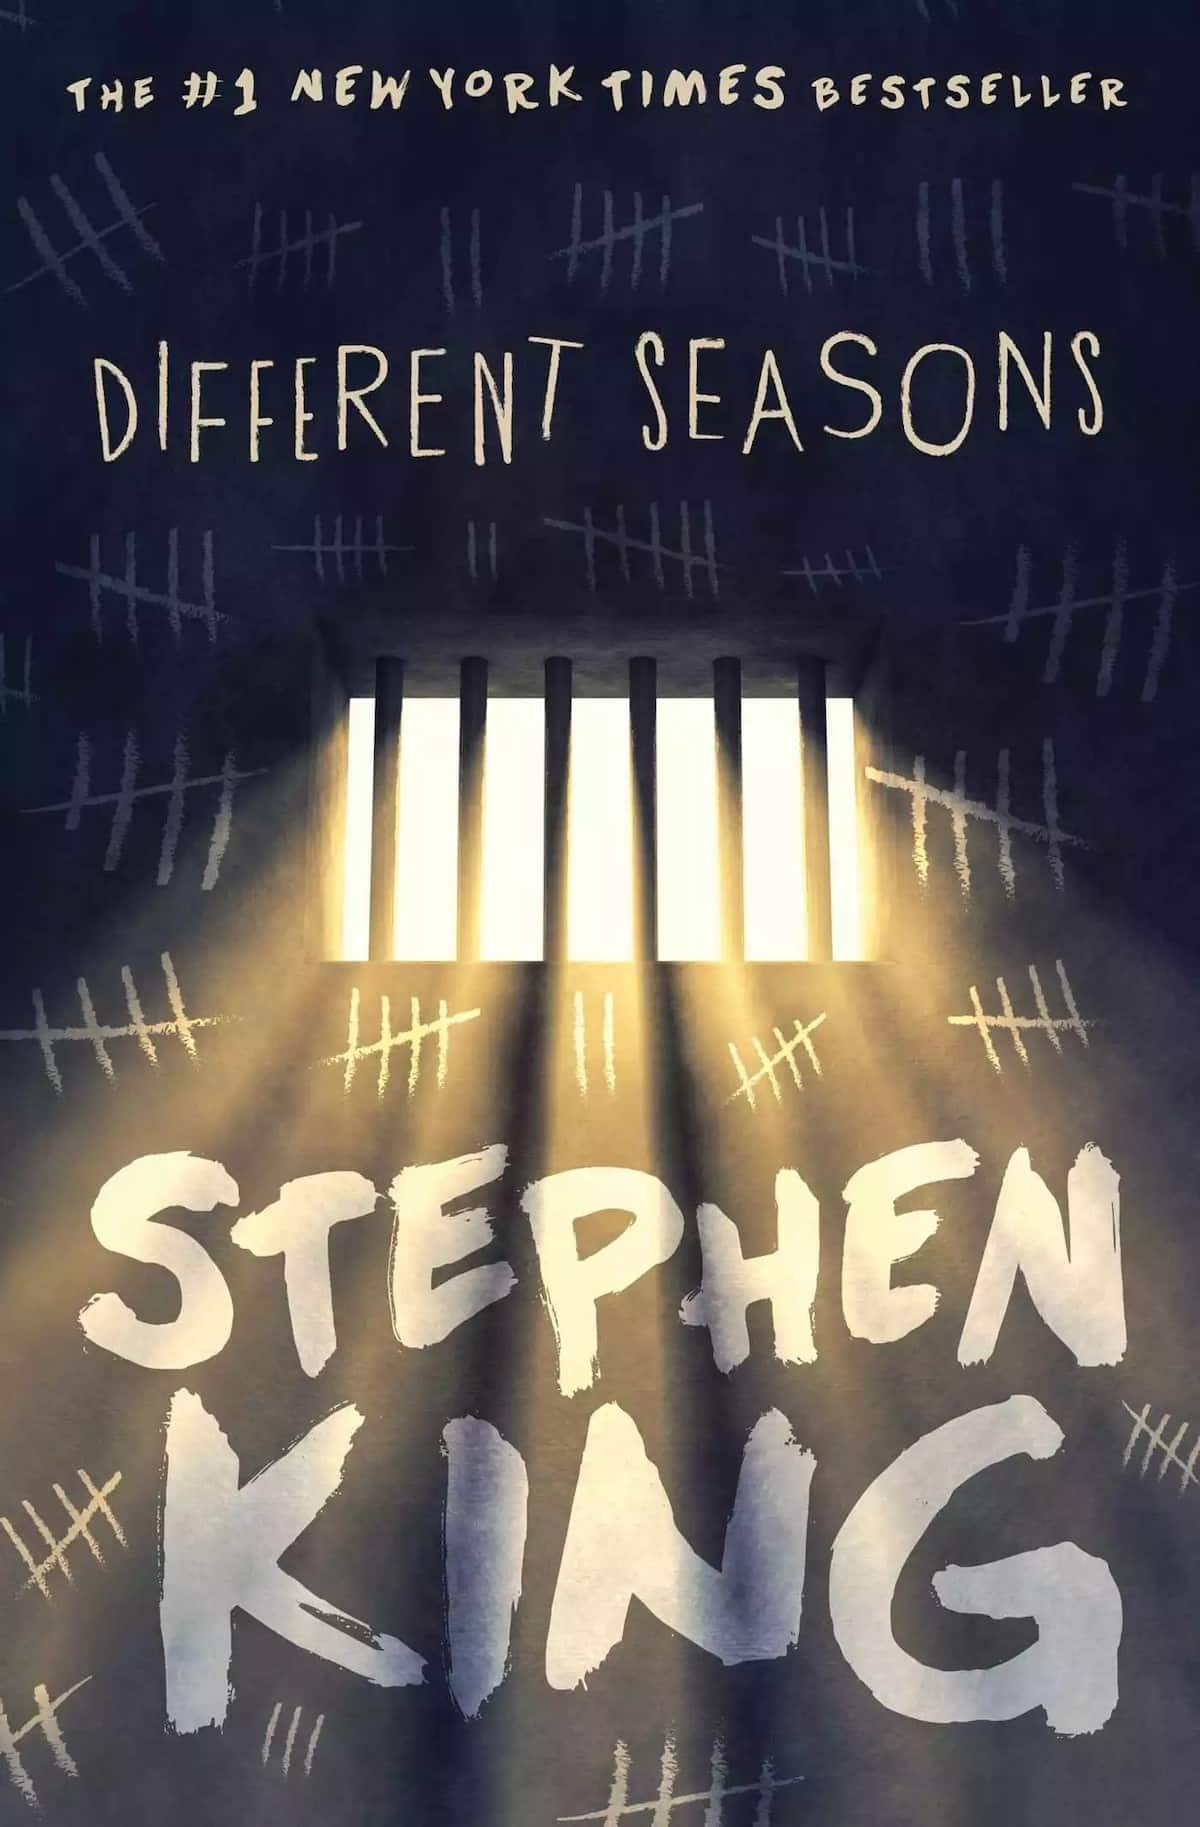 New Stephen king books, Latest Stephen king books, Stephen king books 2018